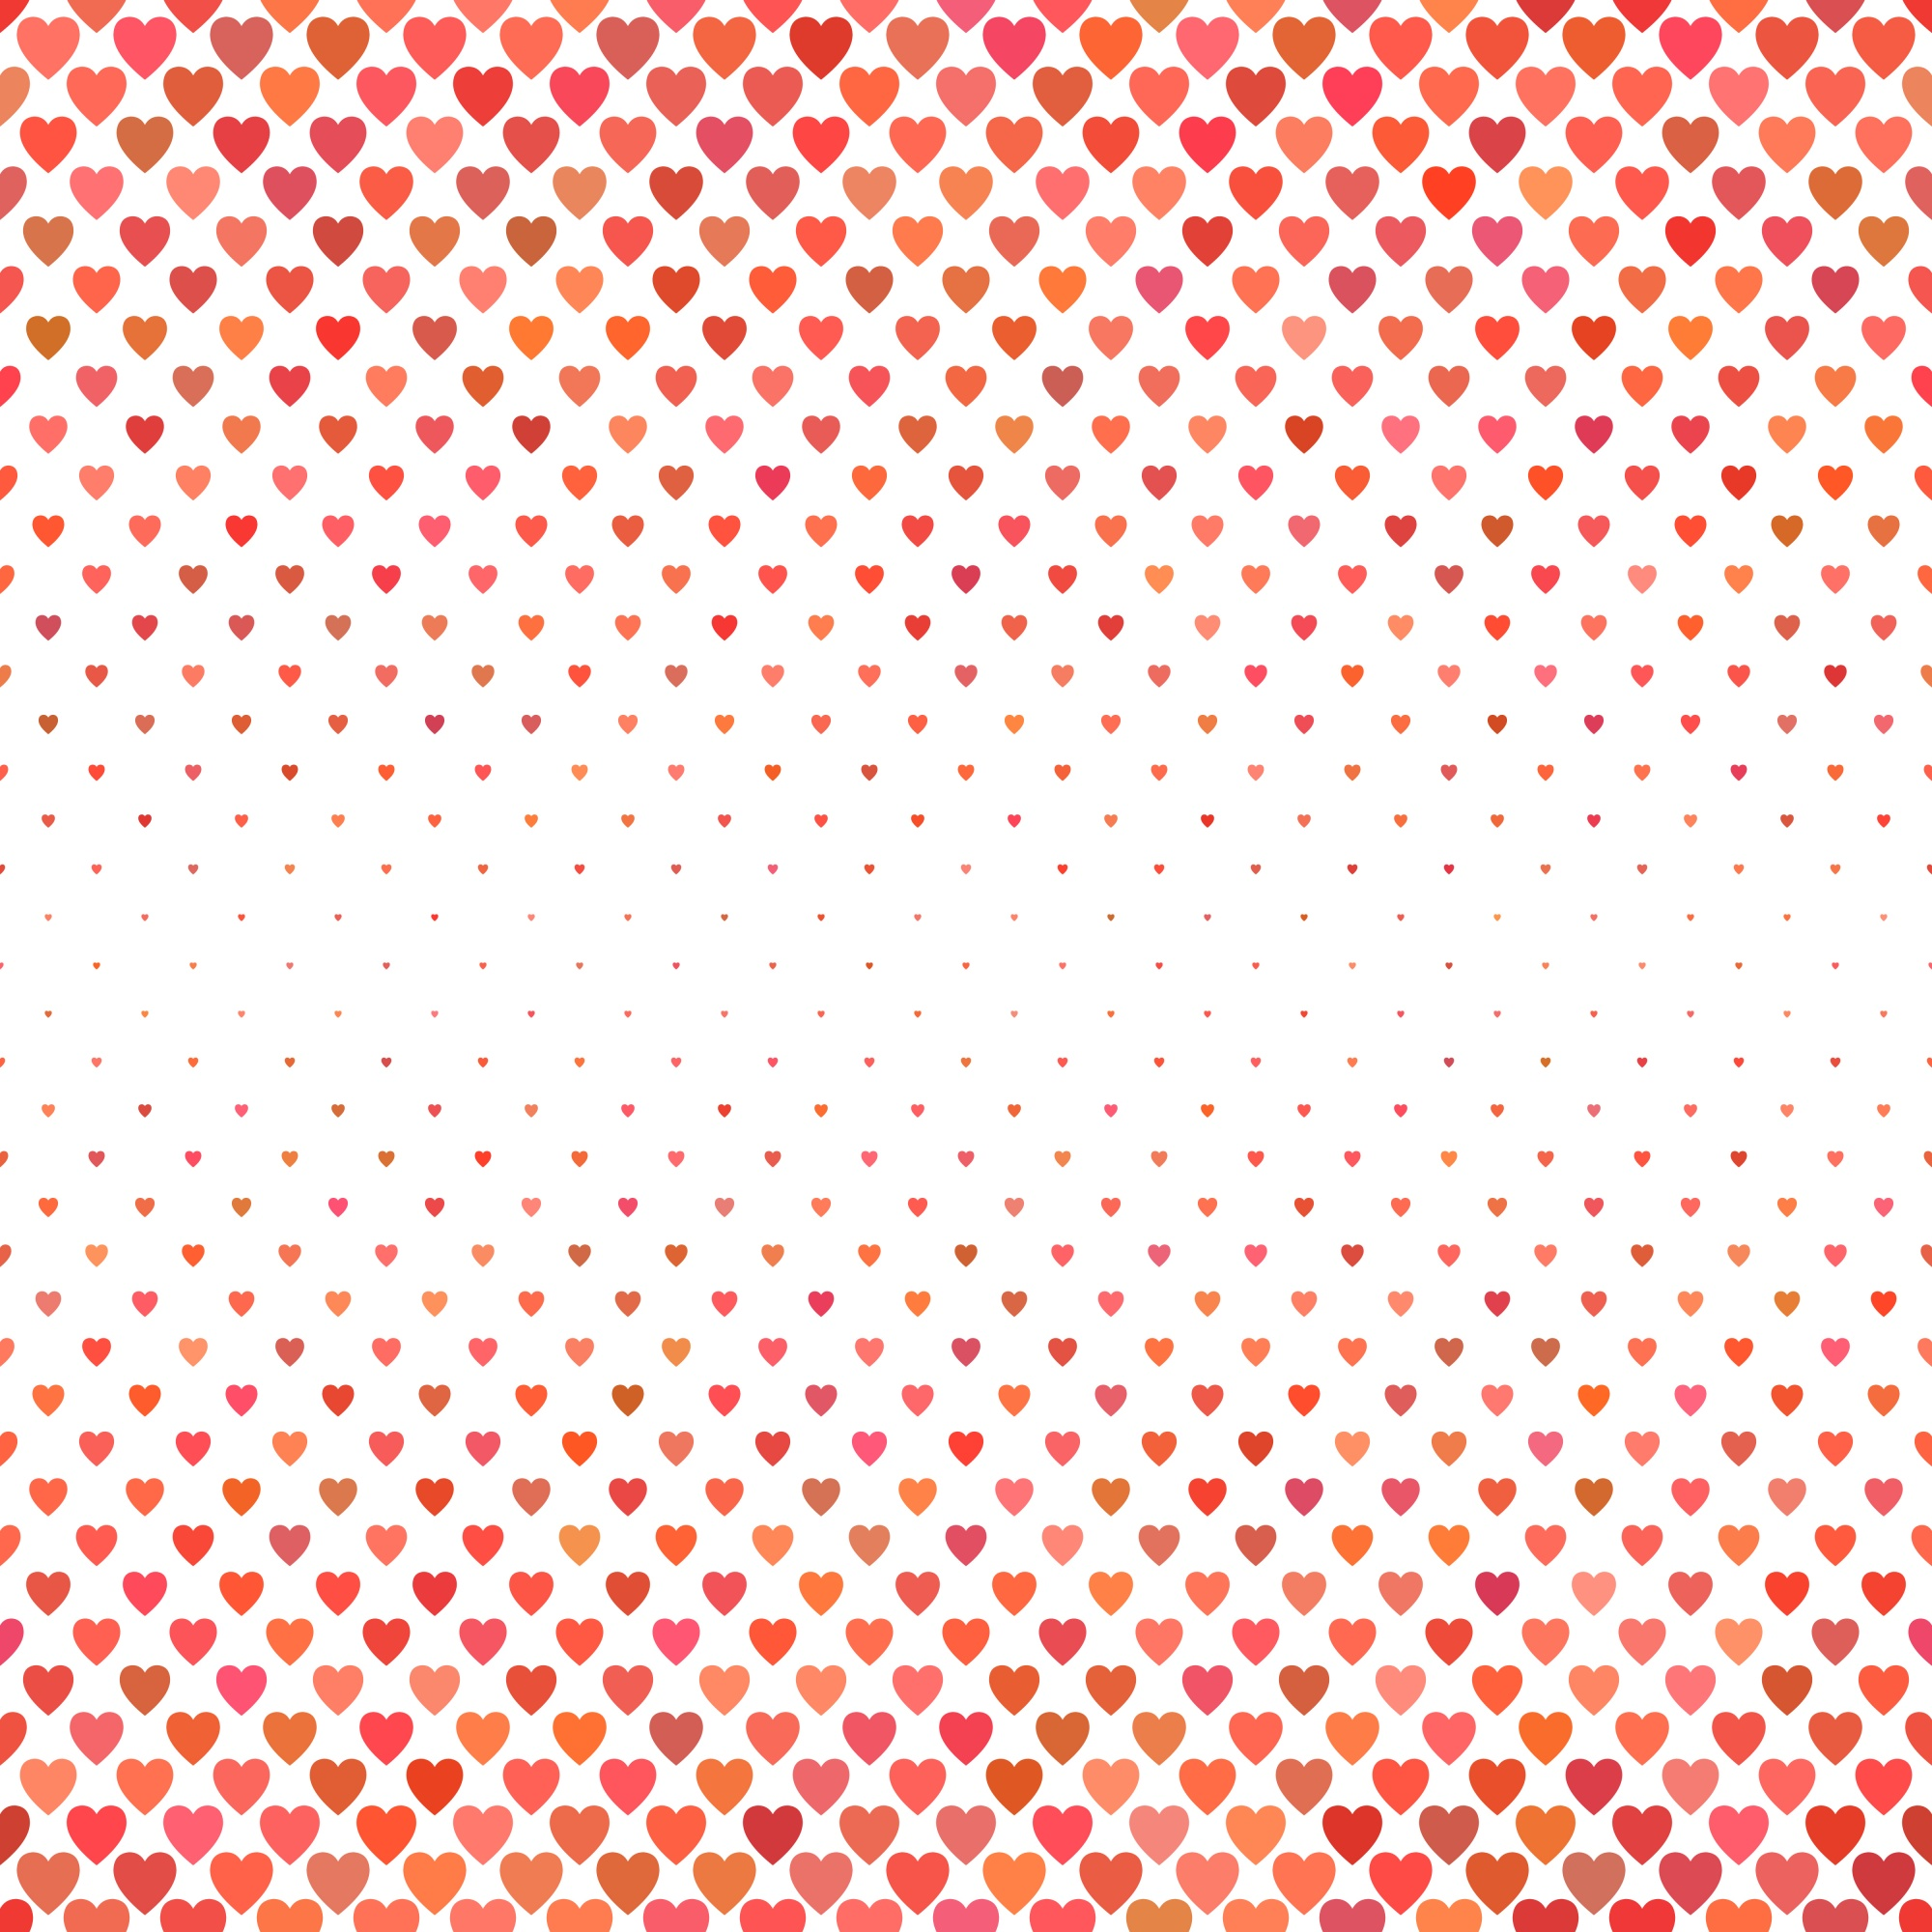 Red heart pattern background